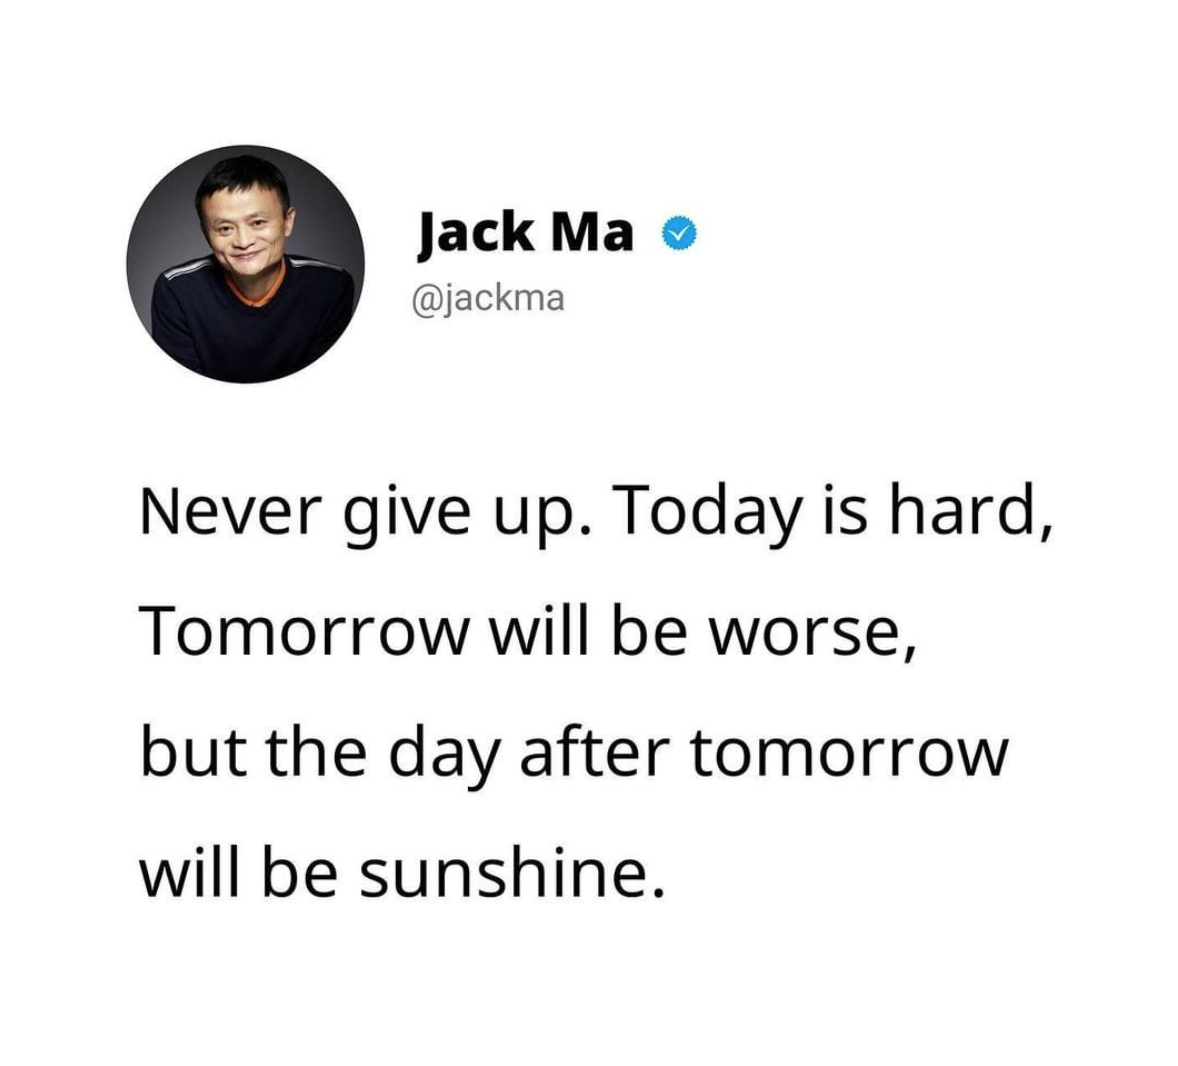 [Image] Never give up. Today is hard, Tomorrow will be worse, but the day after tomorrow will be sunshine.